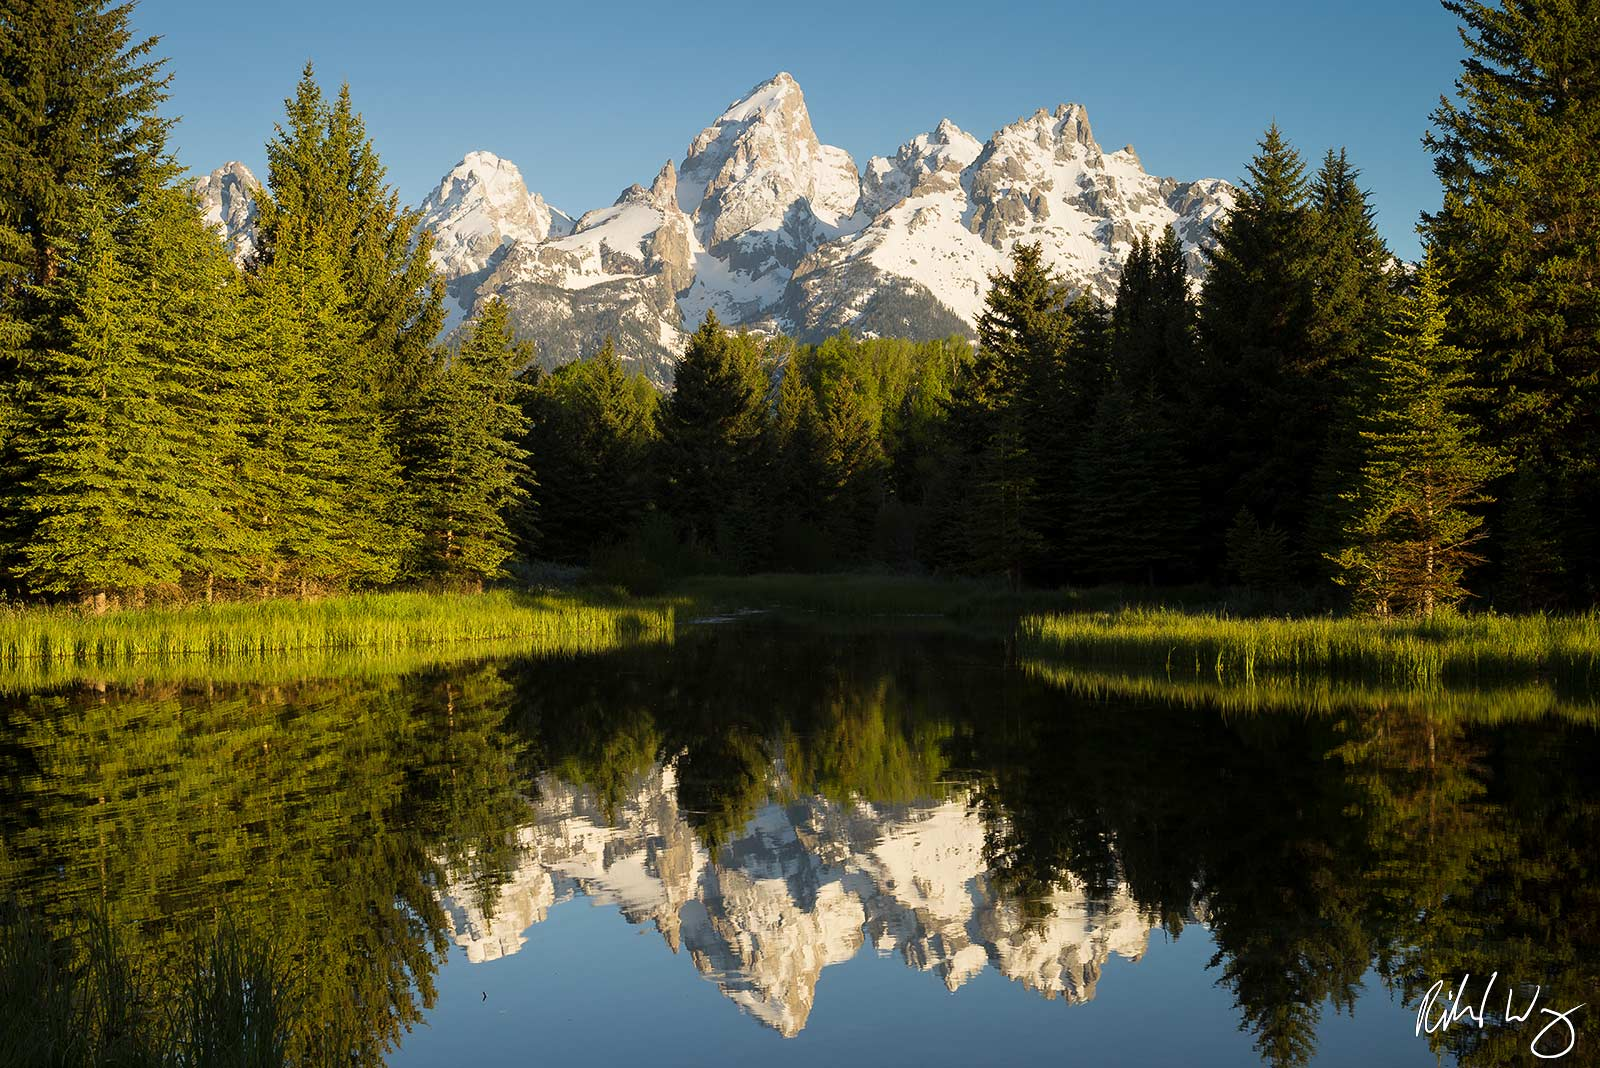 One of the most famous of all western landscapes, Schwabacher Landing is quintessential Rocky Mountains. Year Photographed: 2018...